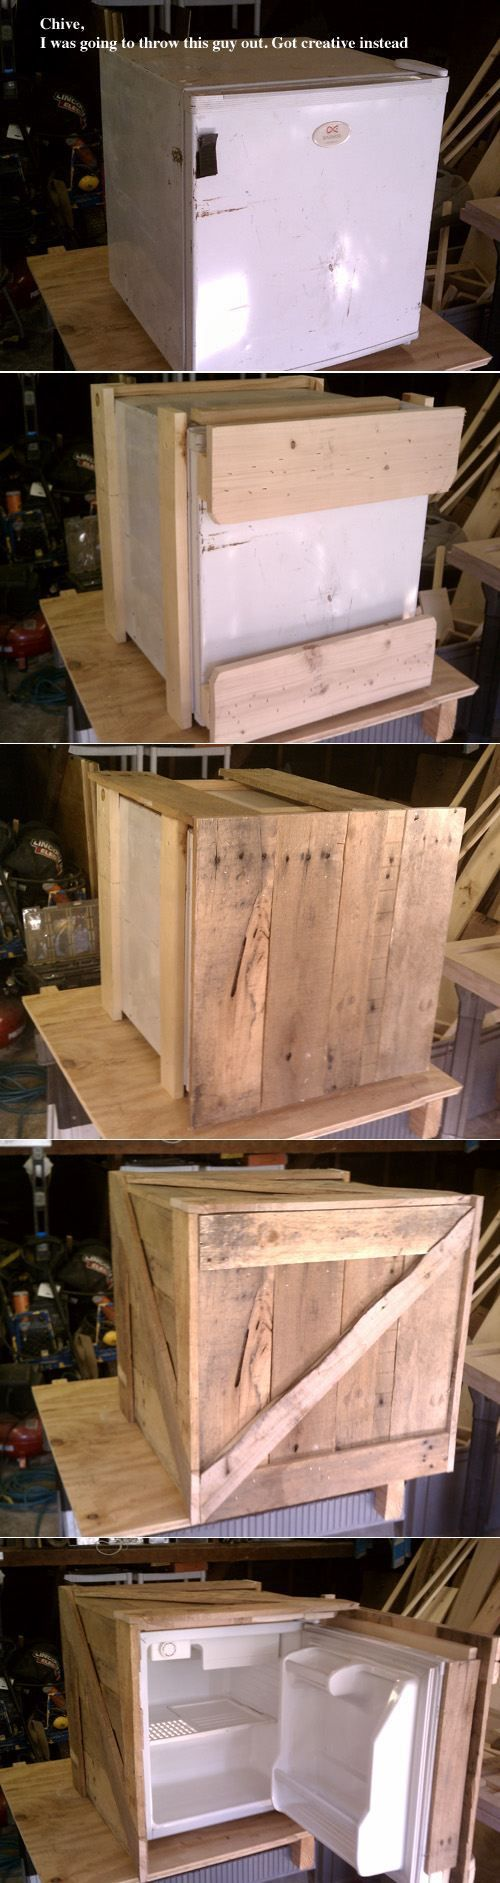 Ugly minifridge gets a facelift by having facade covered with upcycled pallet wood. More pallet design DIY ideas and inspiration at http://pinterest.com/wineinajug/passion-for-pallets/